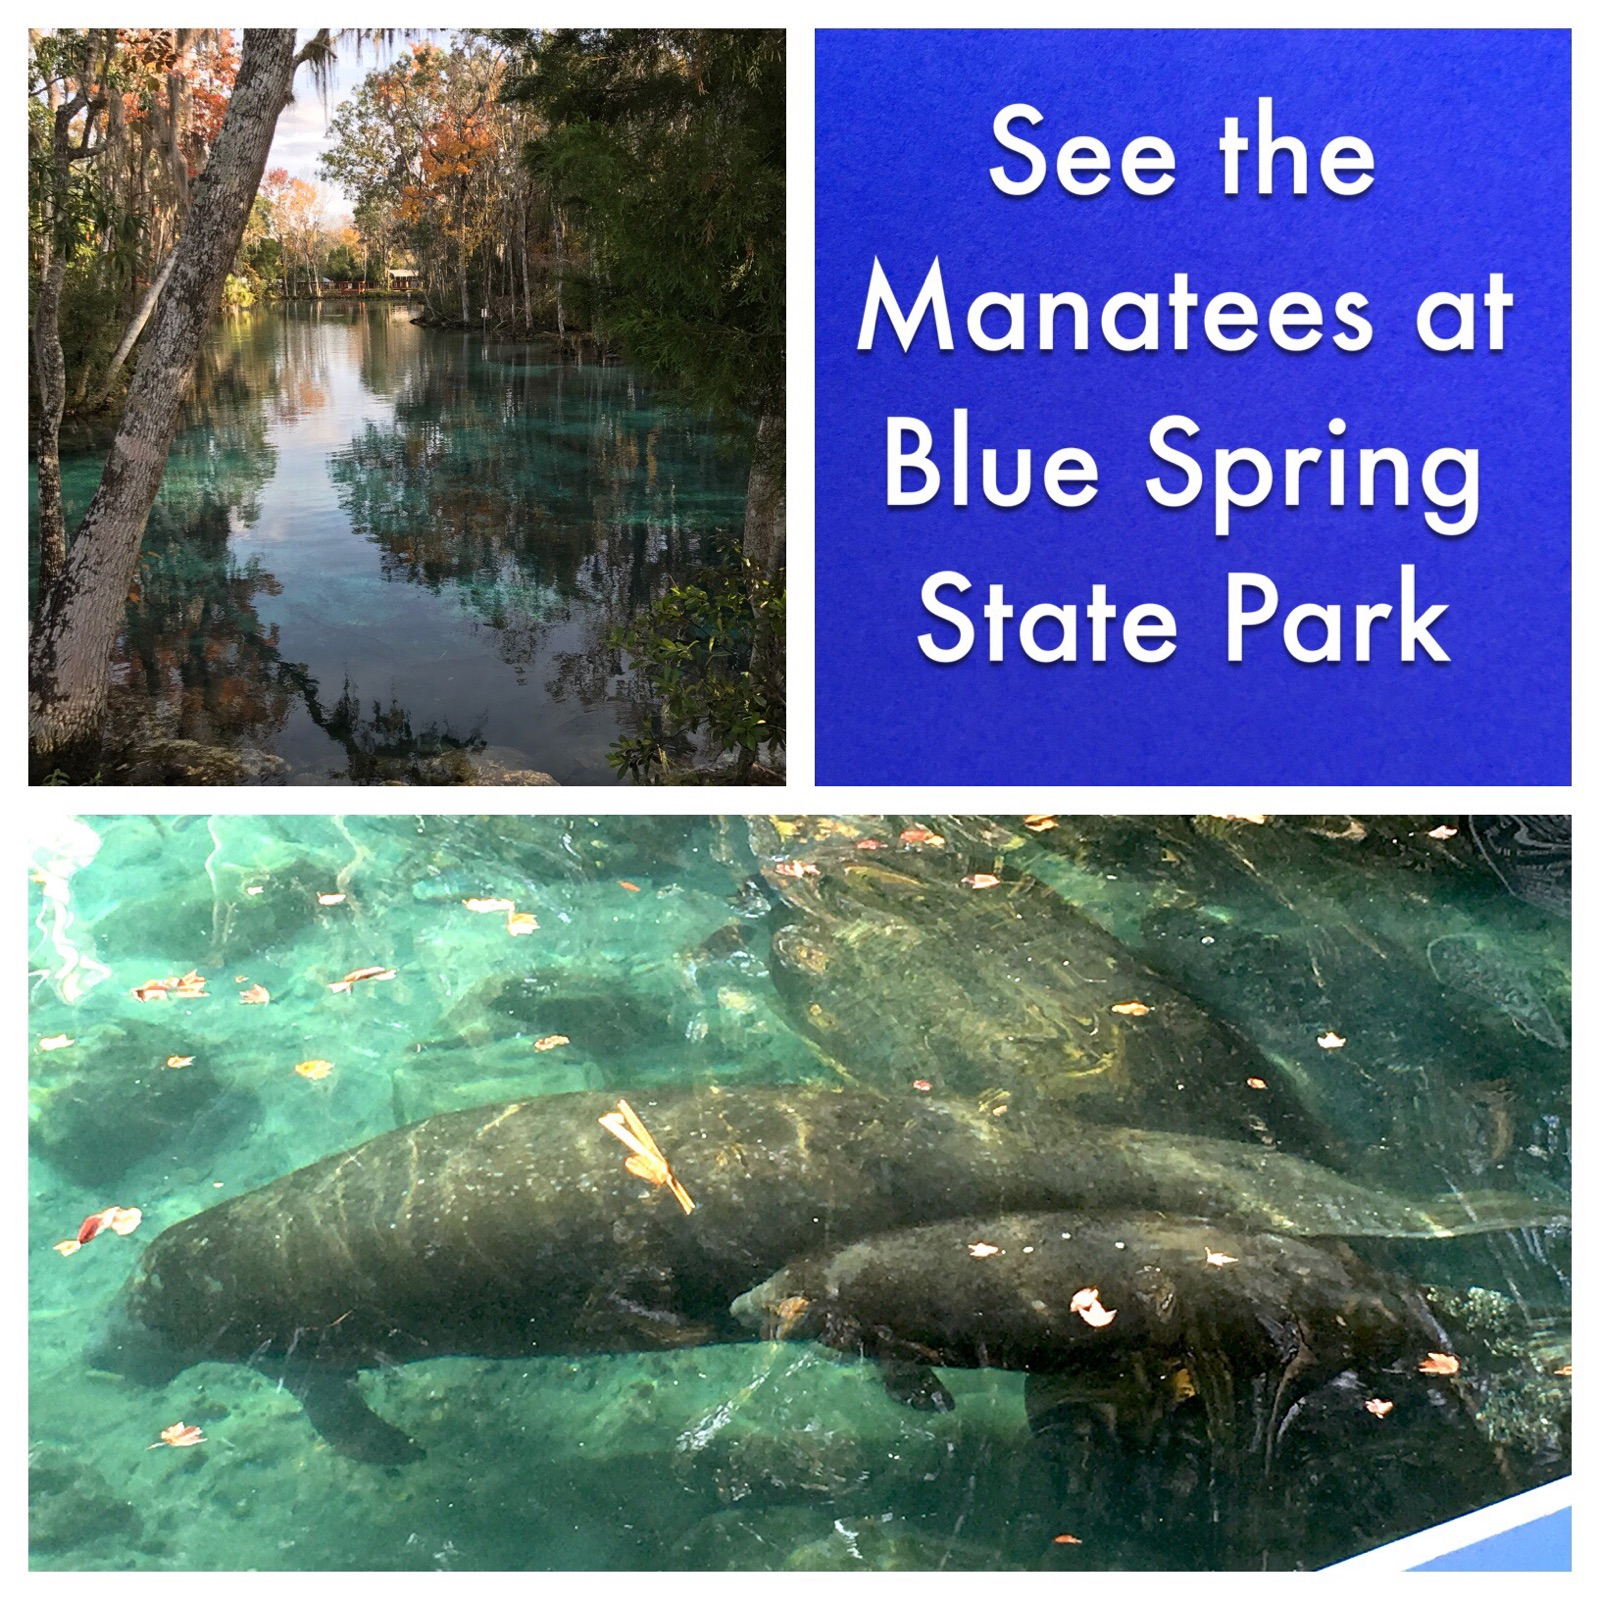 Blue Springs State Park in Orange City, Florida is the winter home of hundreds of manatees.  Located a little over an hour away from Disney World.